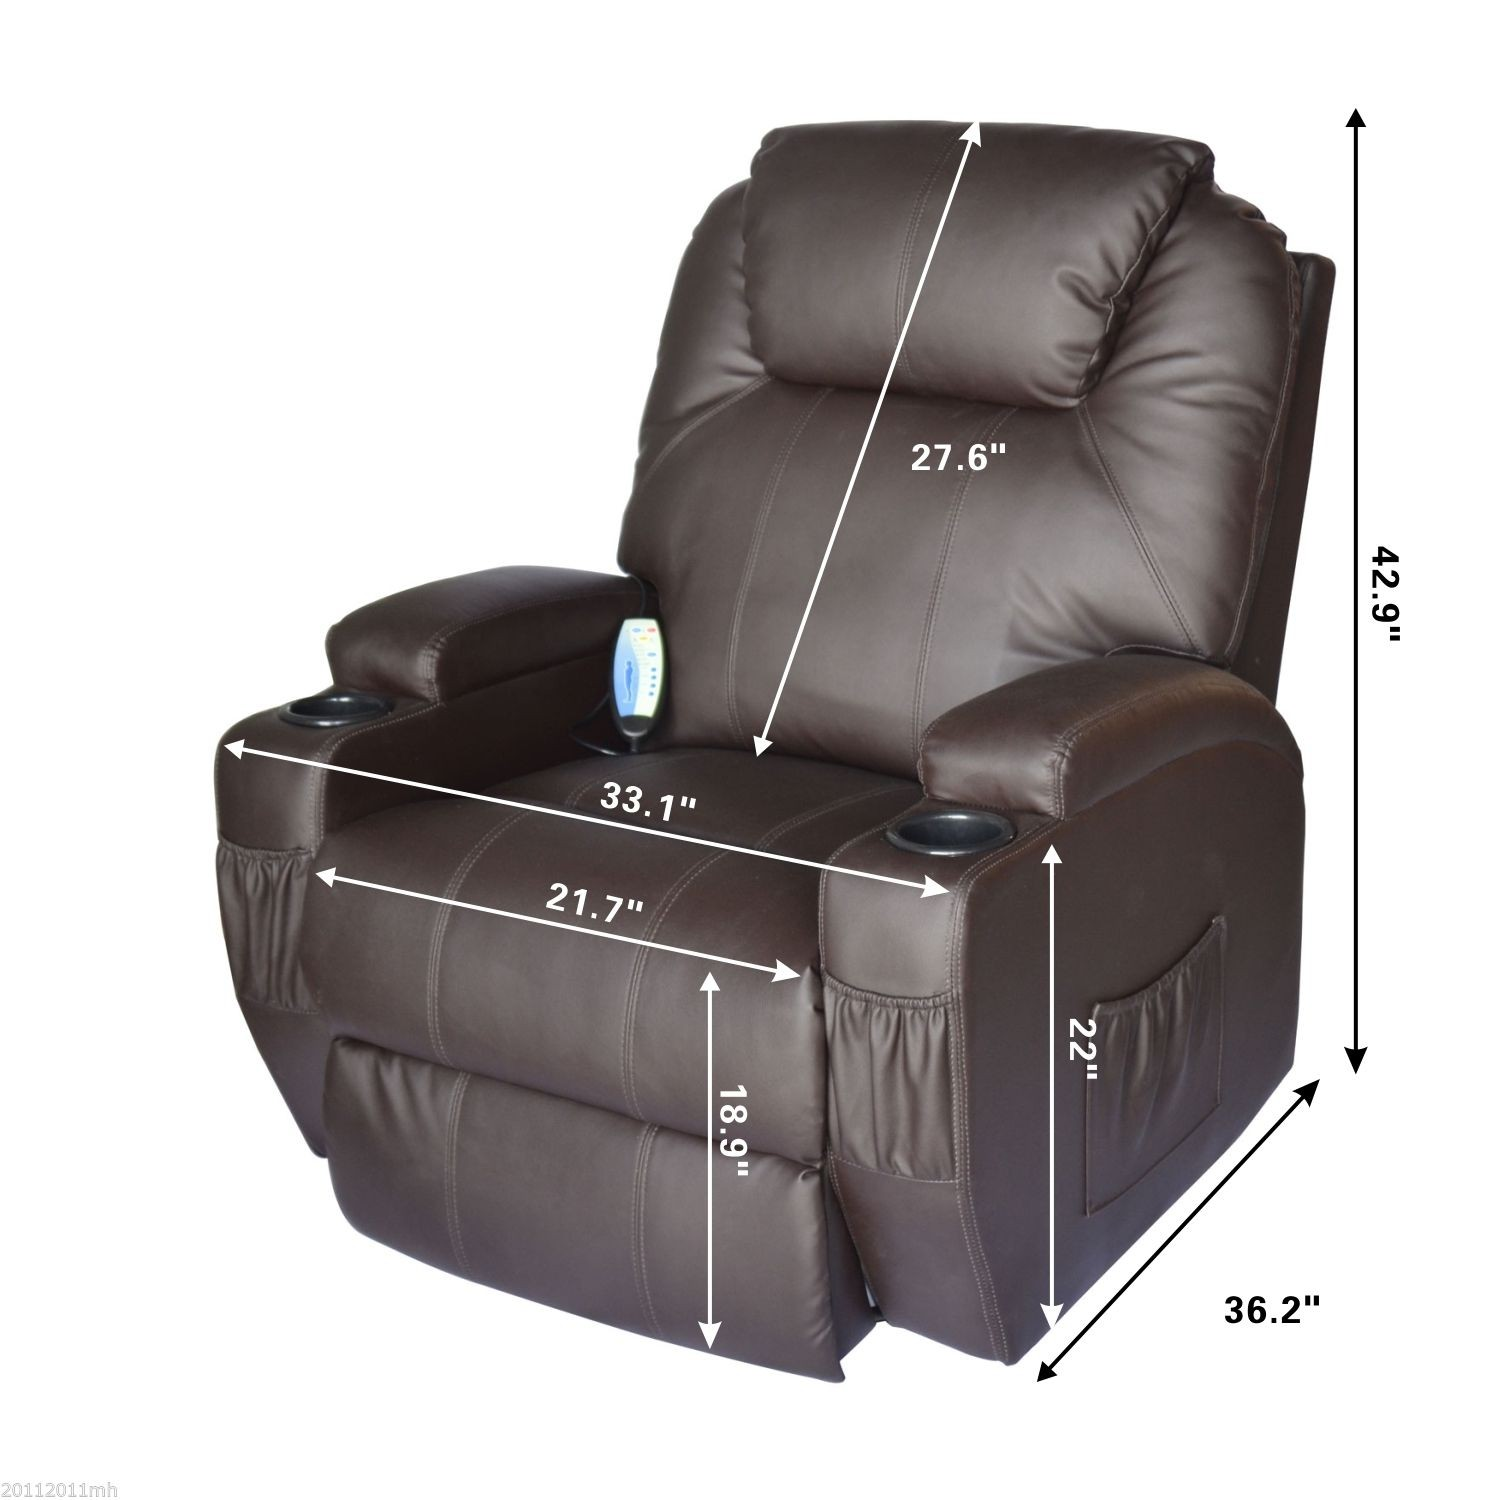 HOM Luxury Leather Massage Sofa Adjustable Recliner Chair